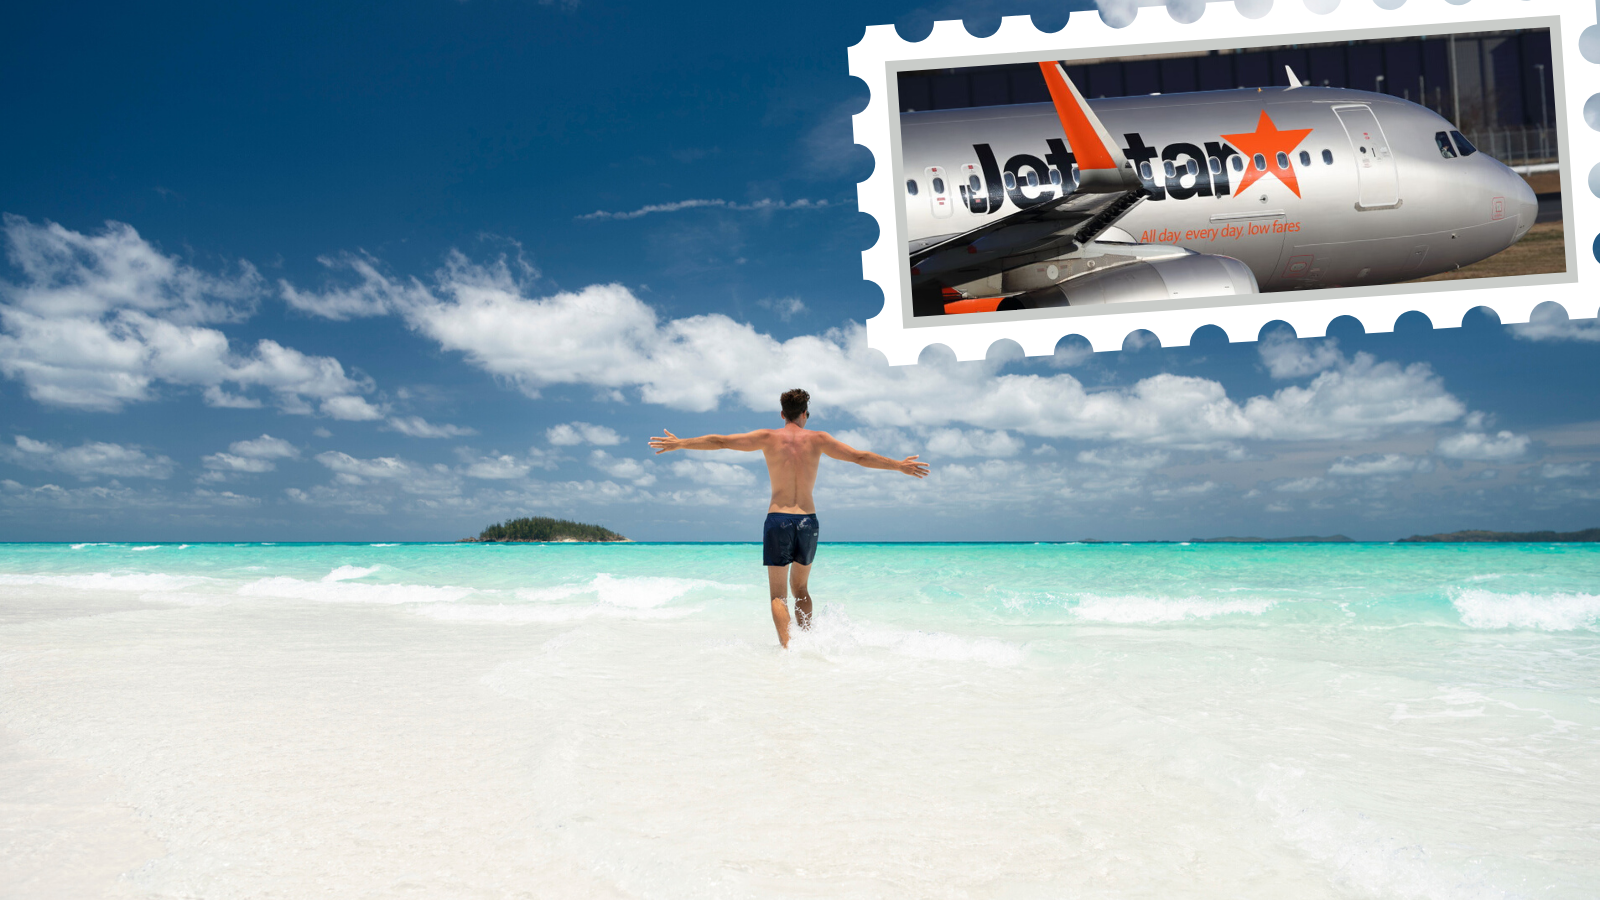 Travel is officially back: Jetstar launches $35 sale